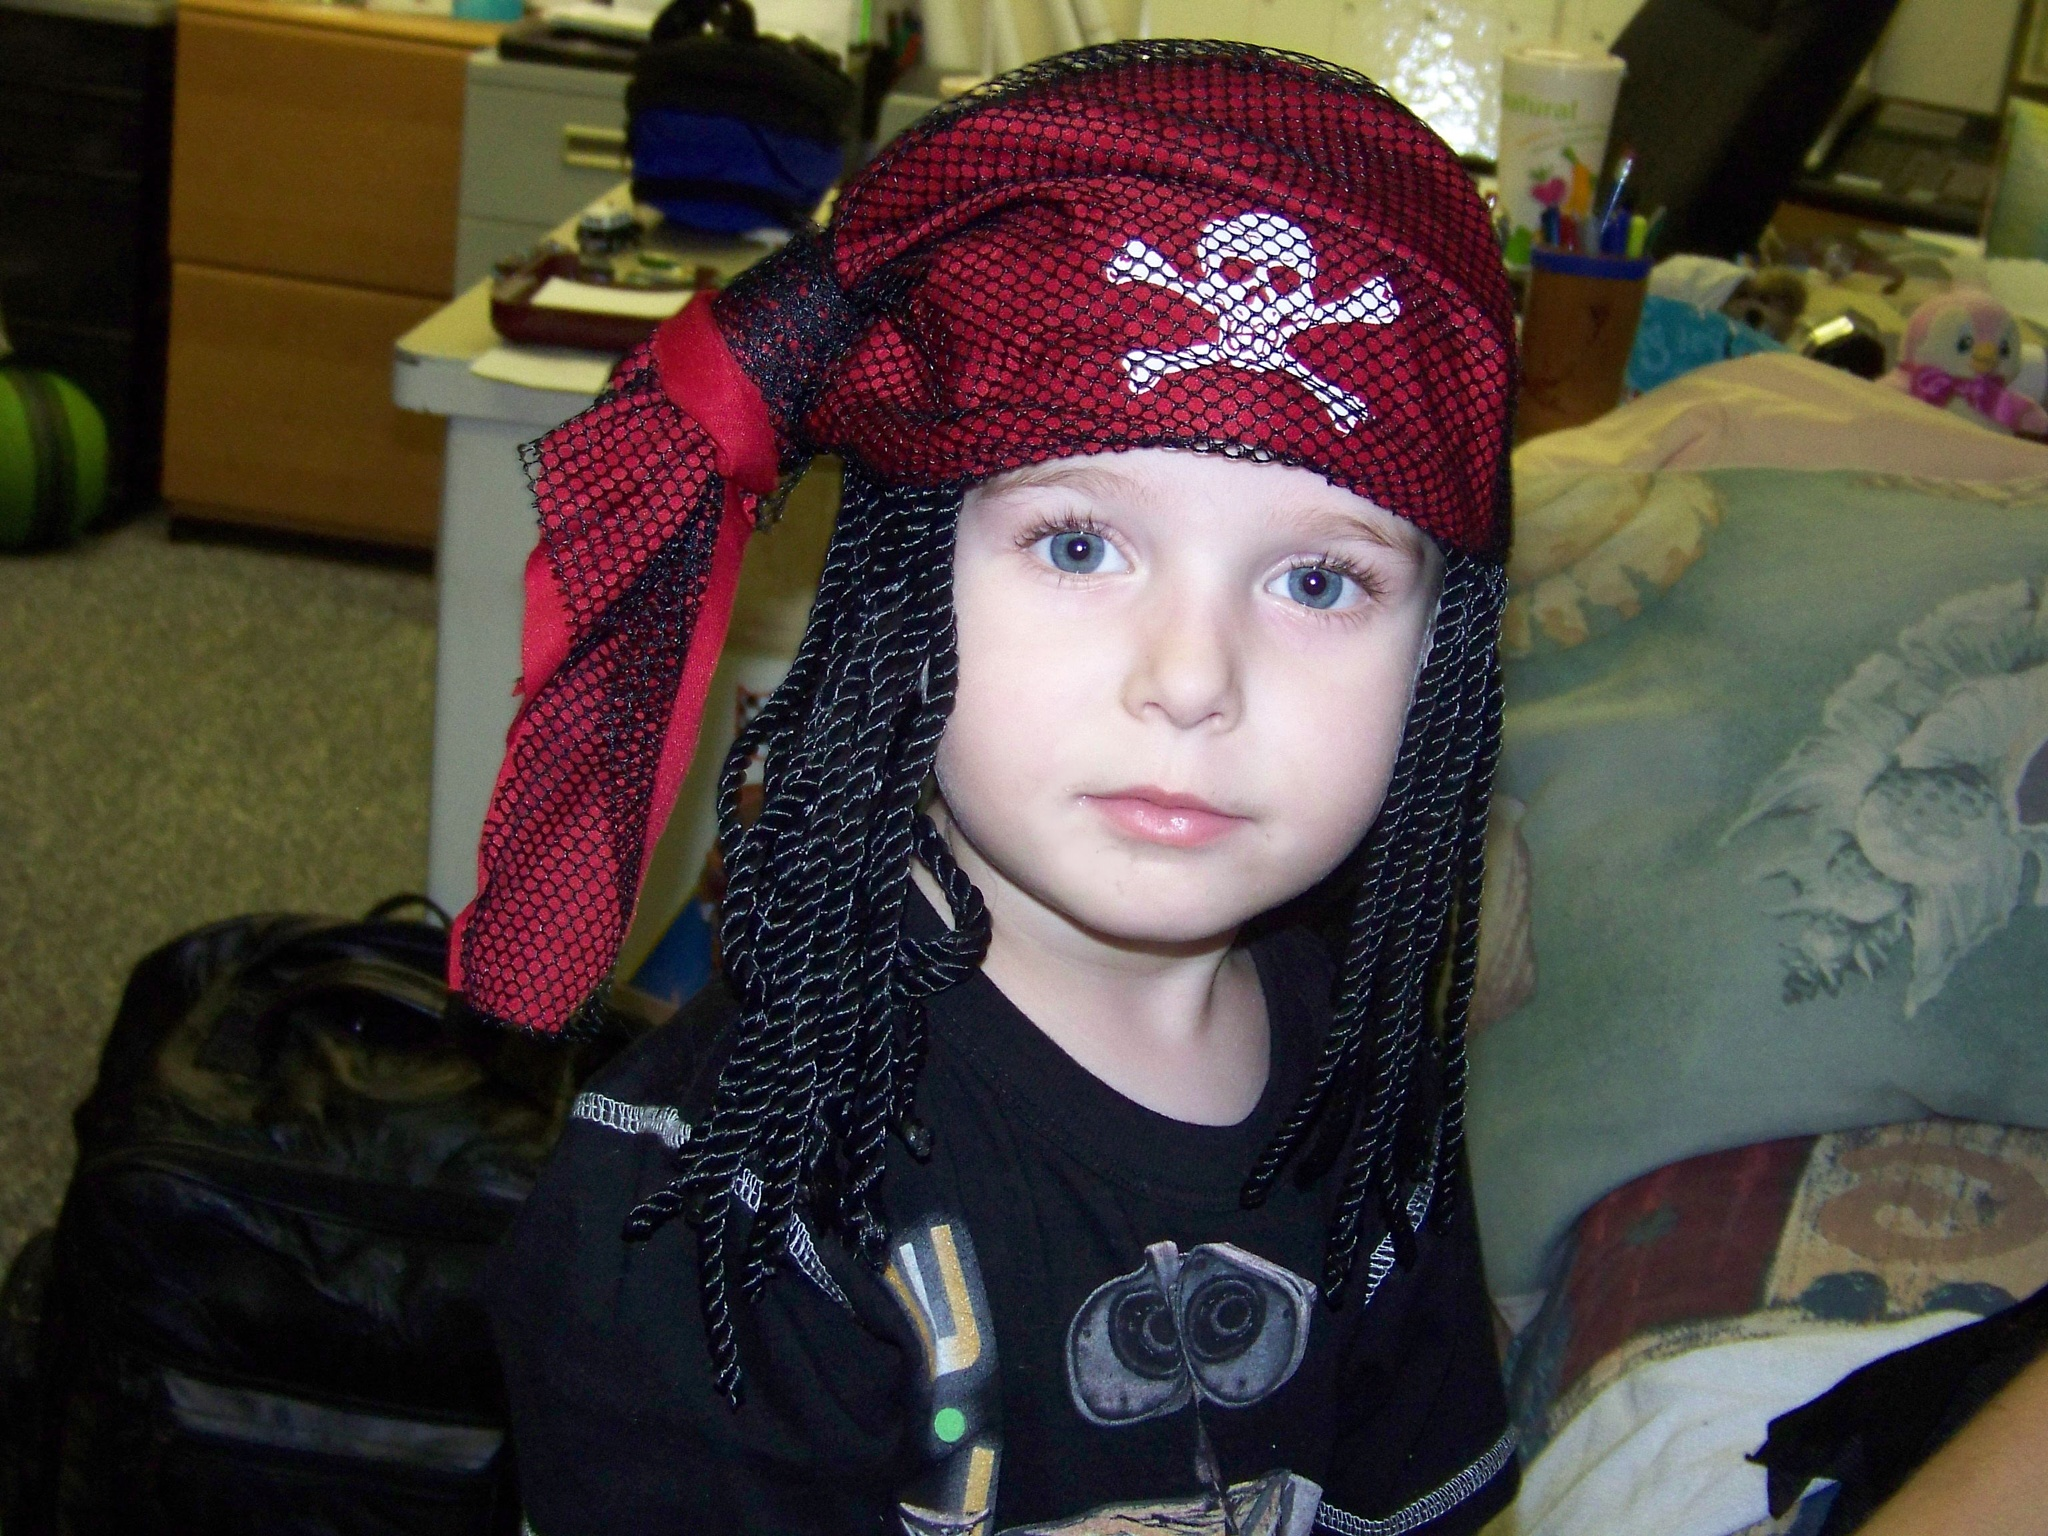 Our little Pirate by Julie